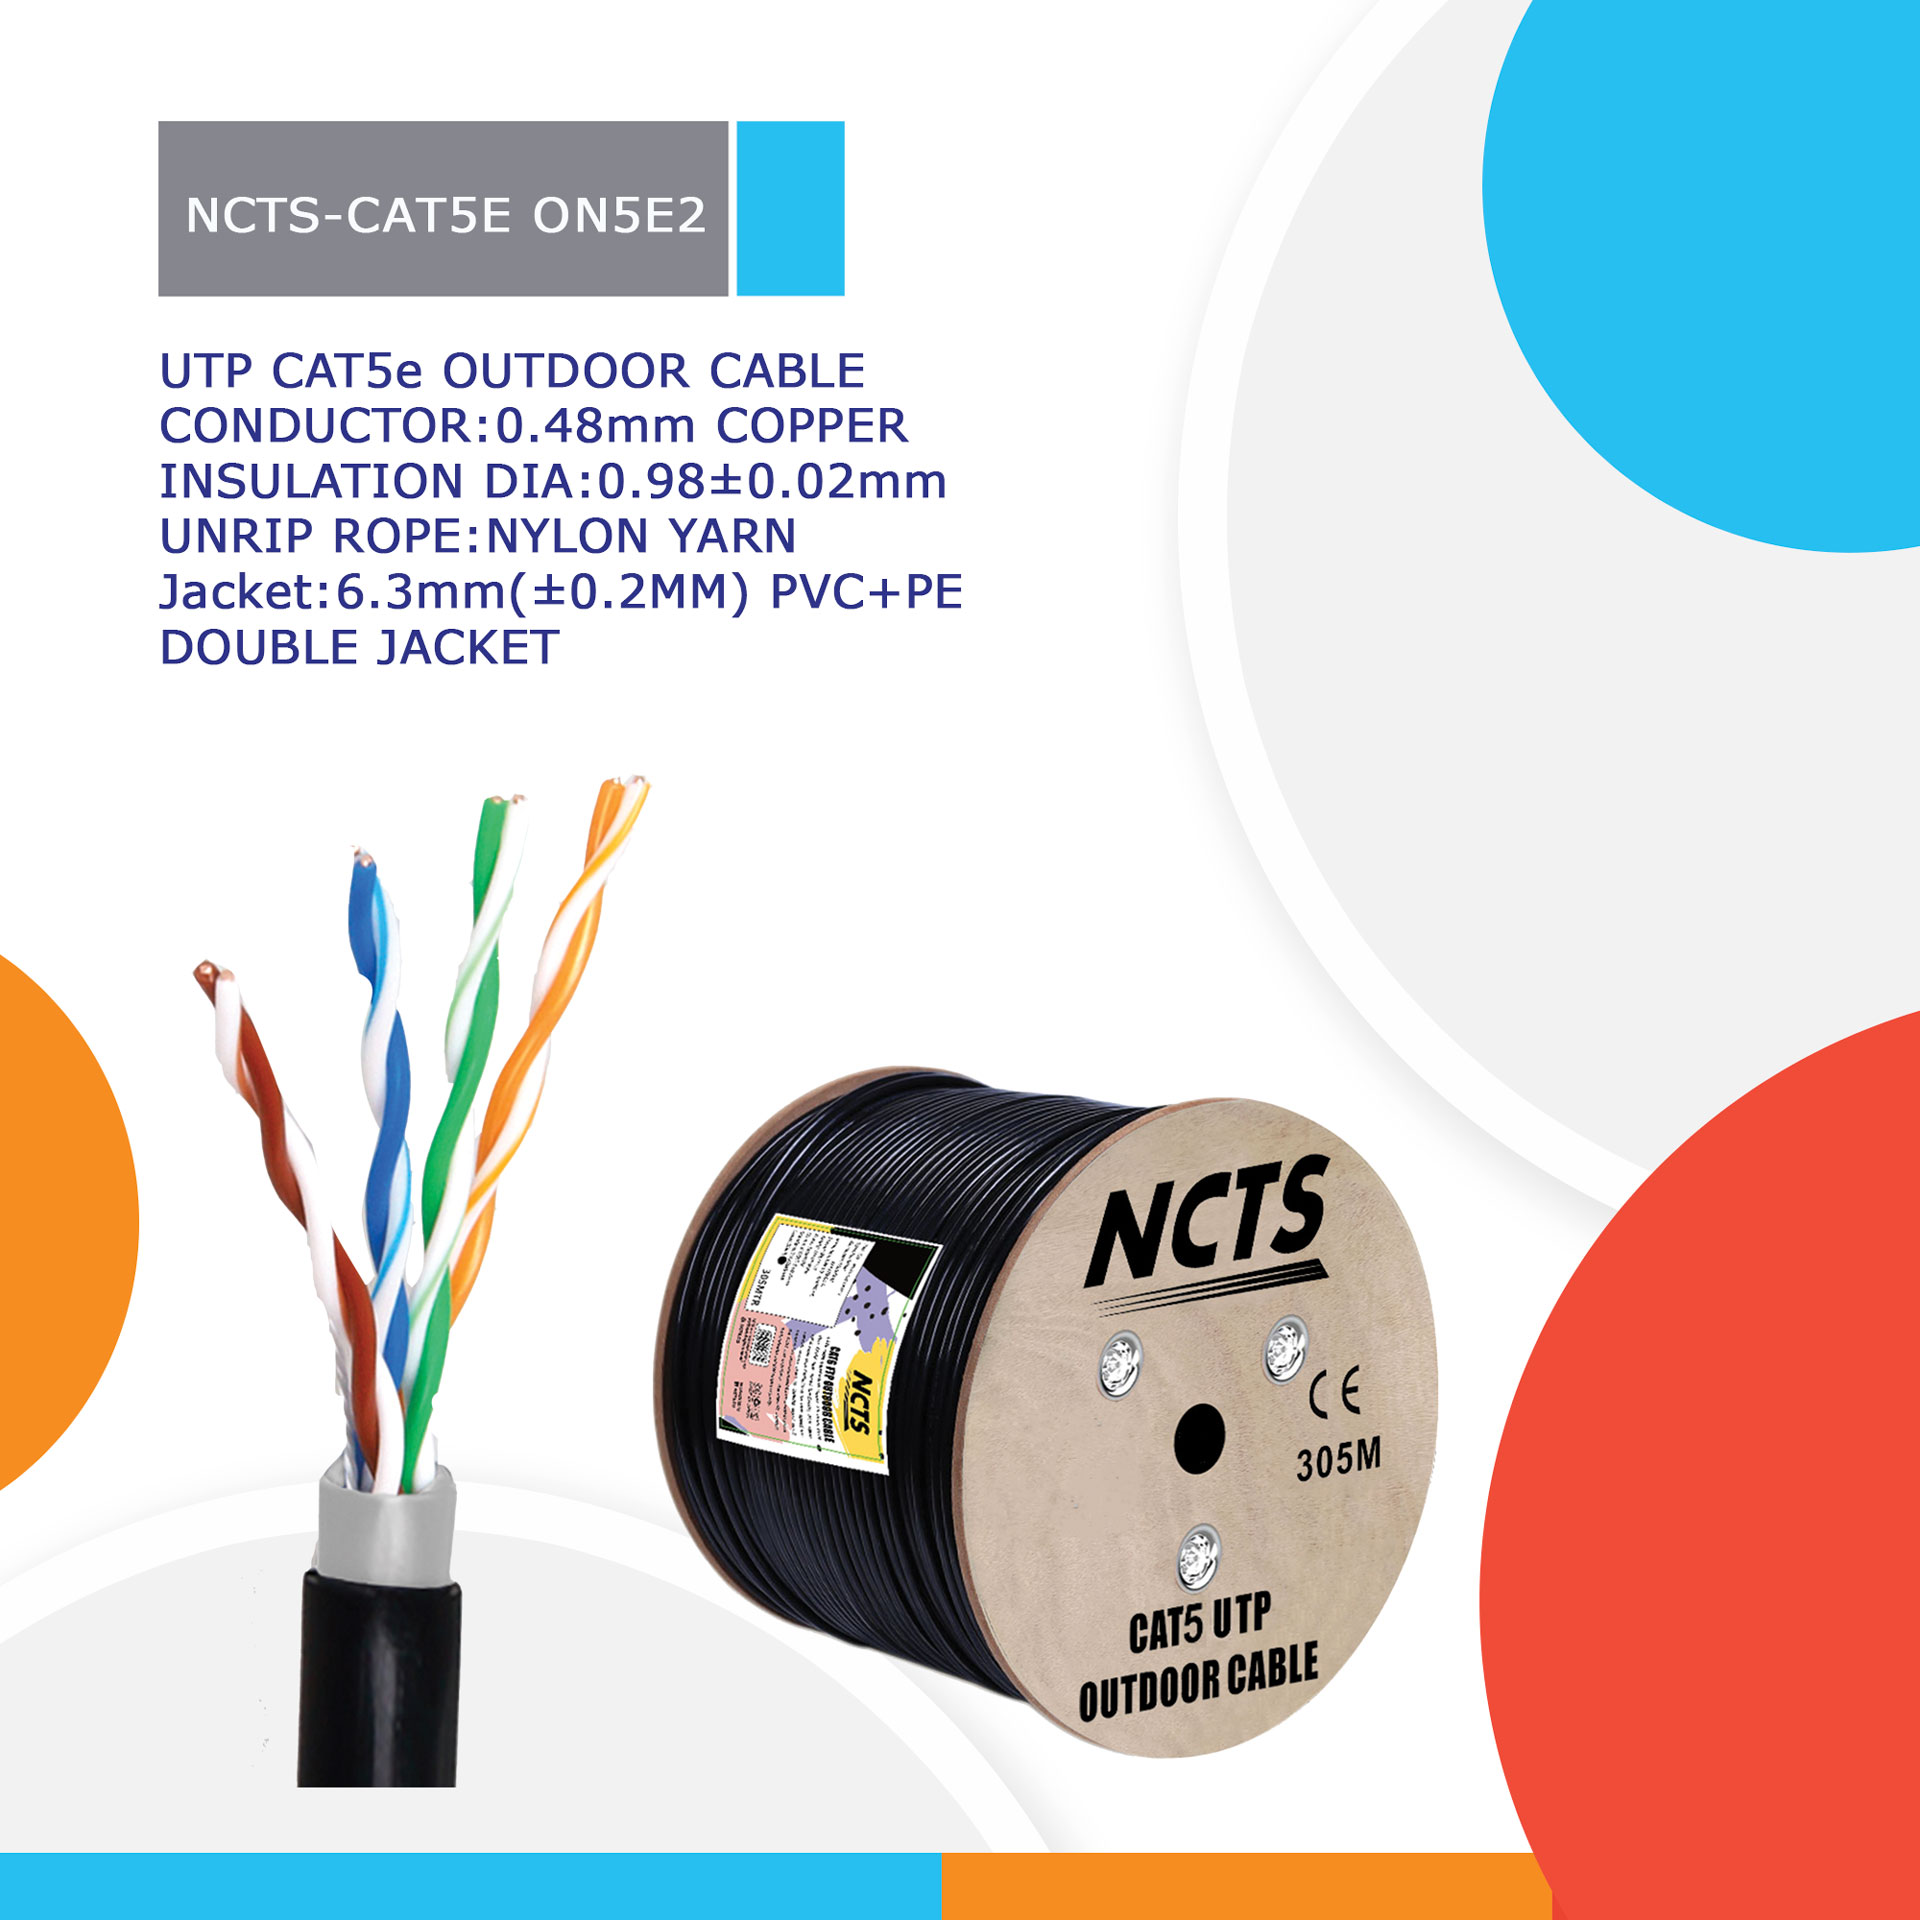 NCTS-CAT5E ON5E2